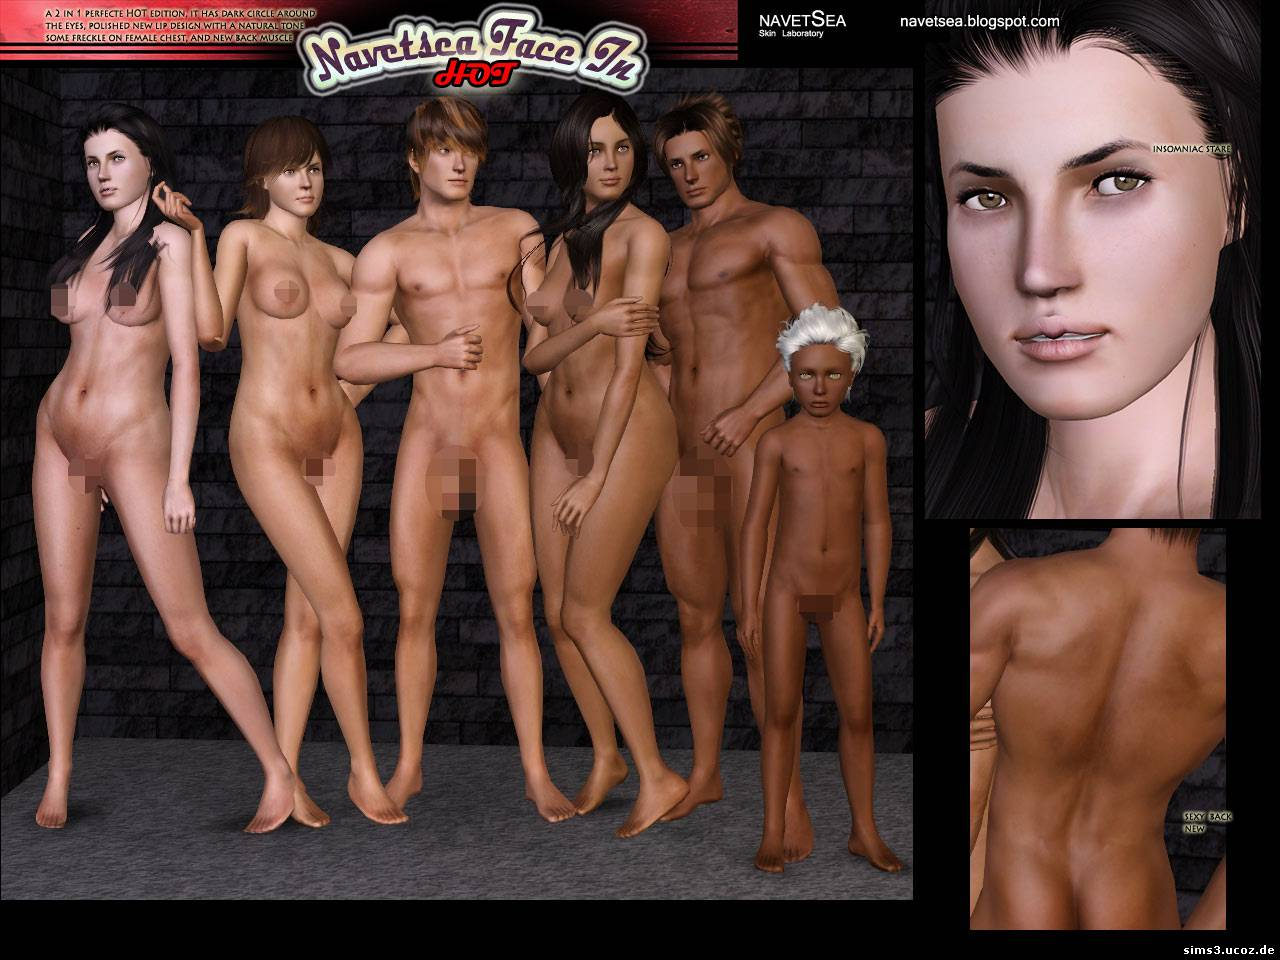 The sims 2 nude skins download porncraft movie